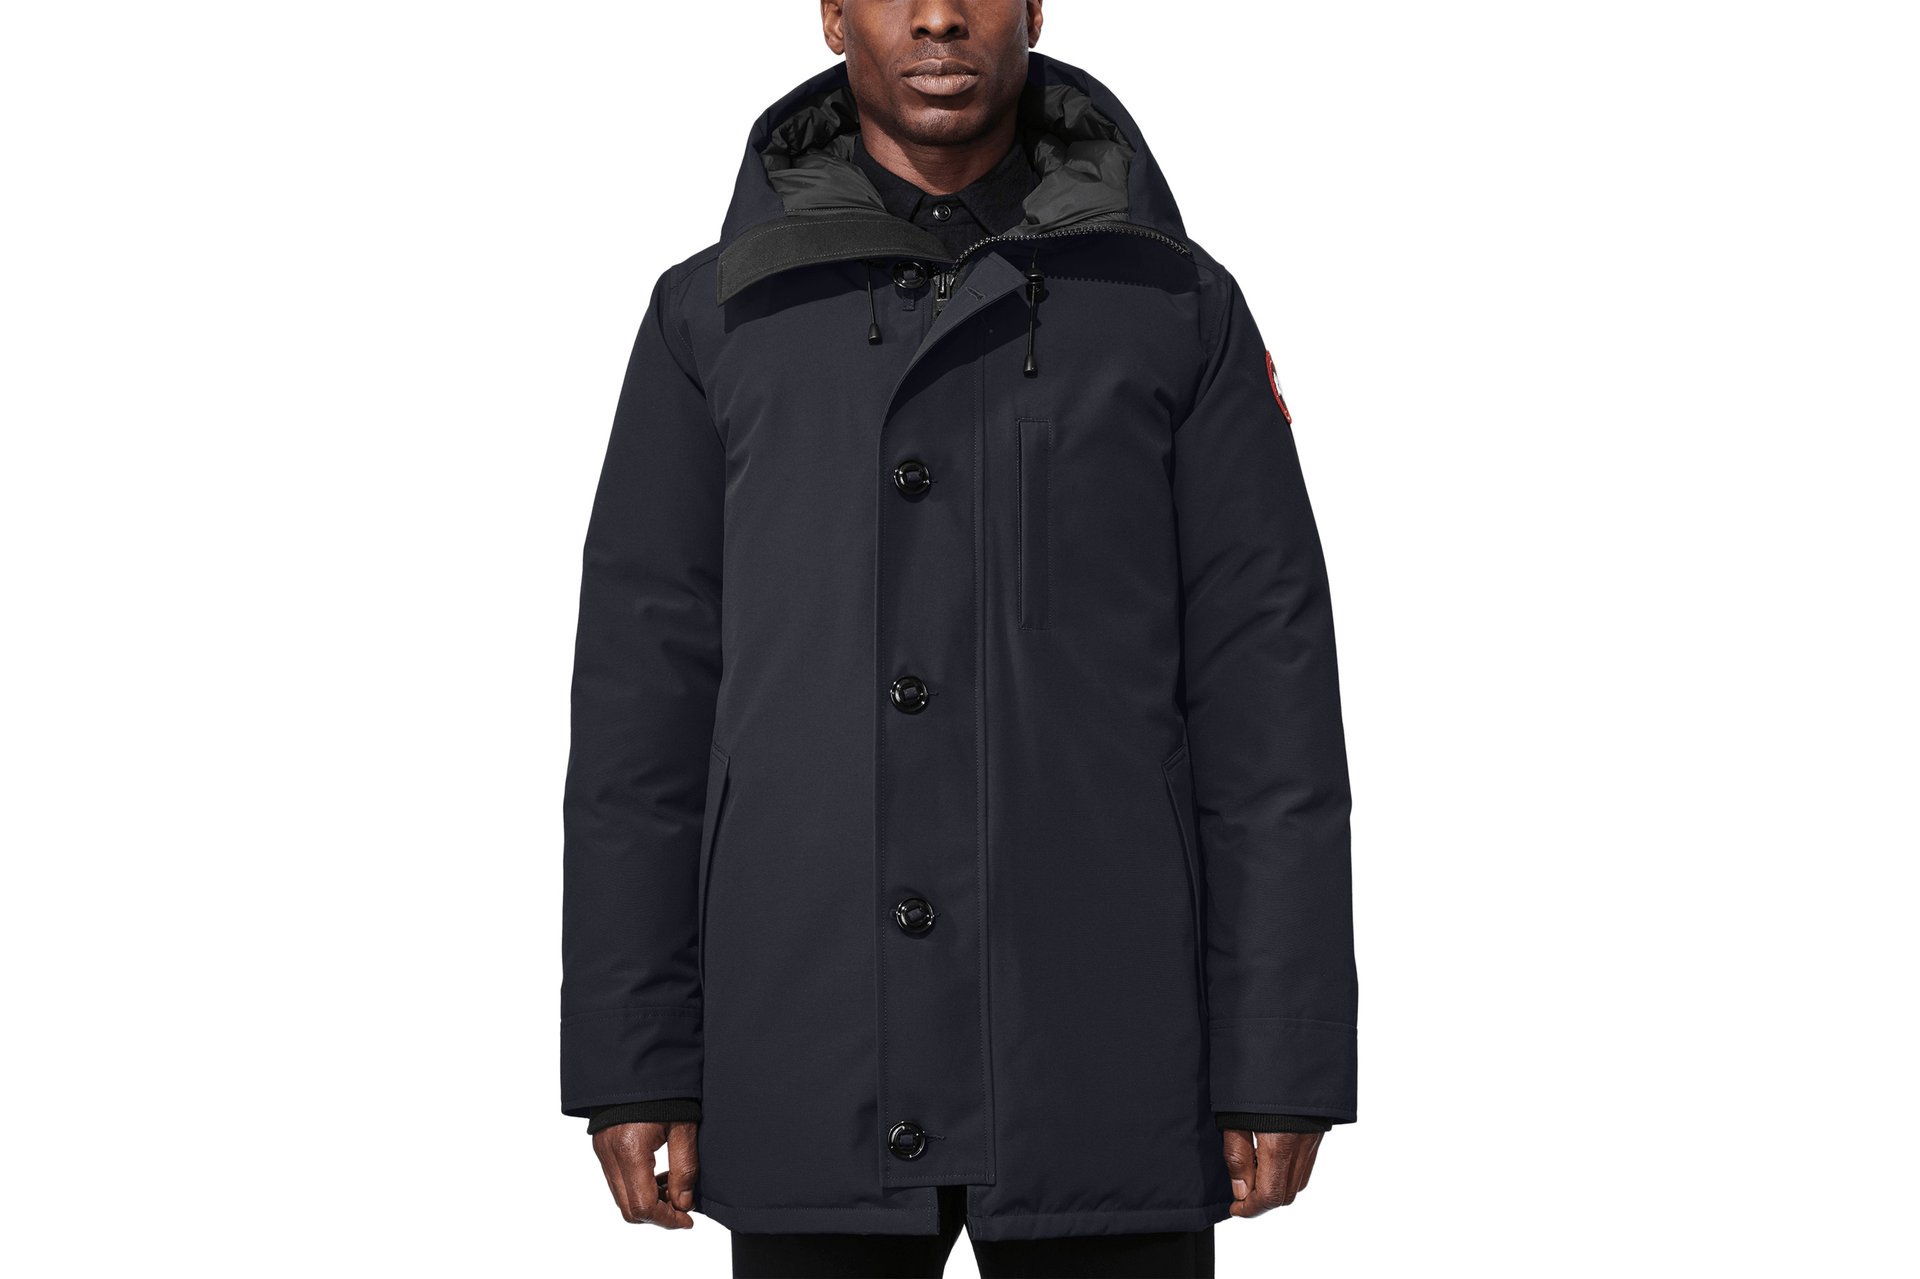 MENS CHATEAU PARKA - NO FUR - 3426MNF - 67 MENS SOFTGOODS CANADA GOOSE